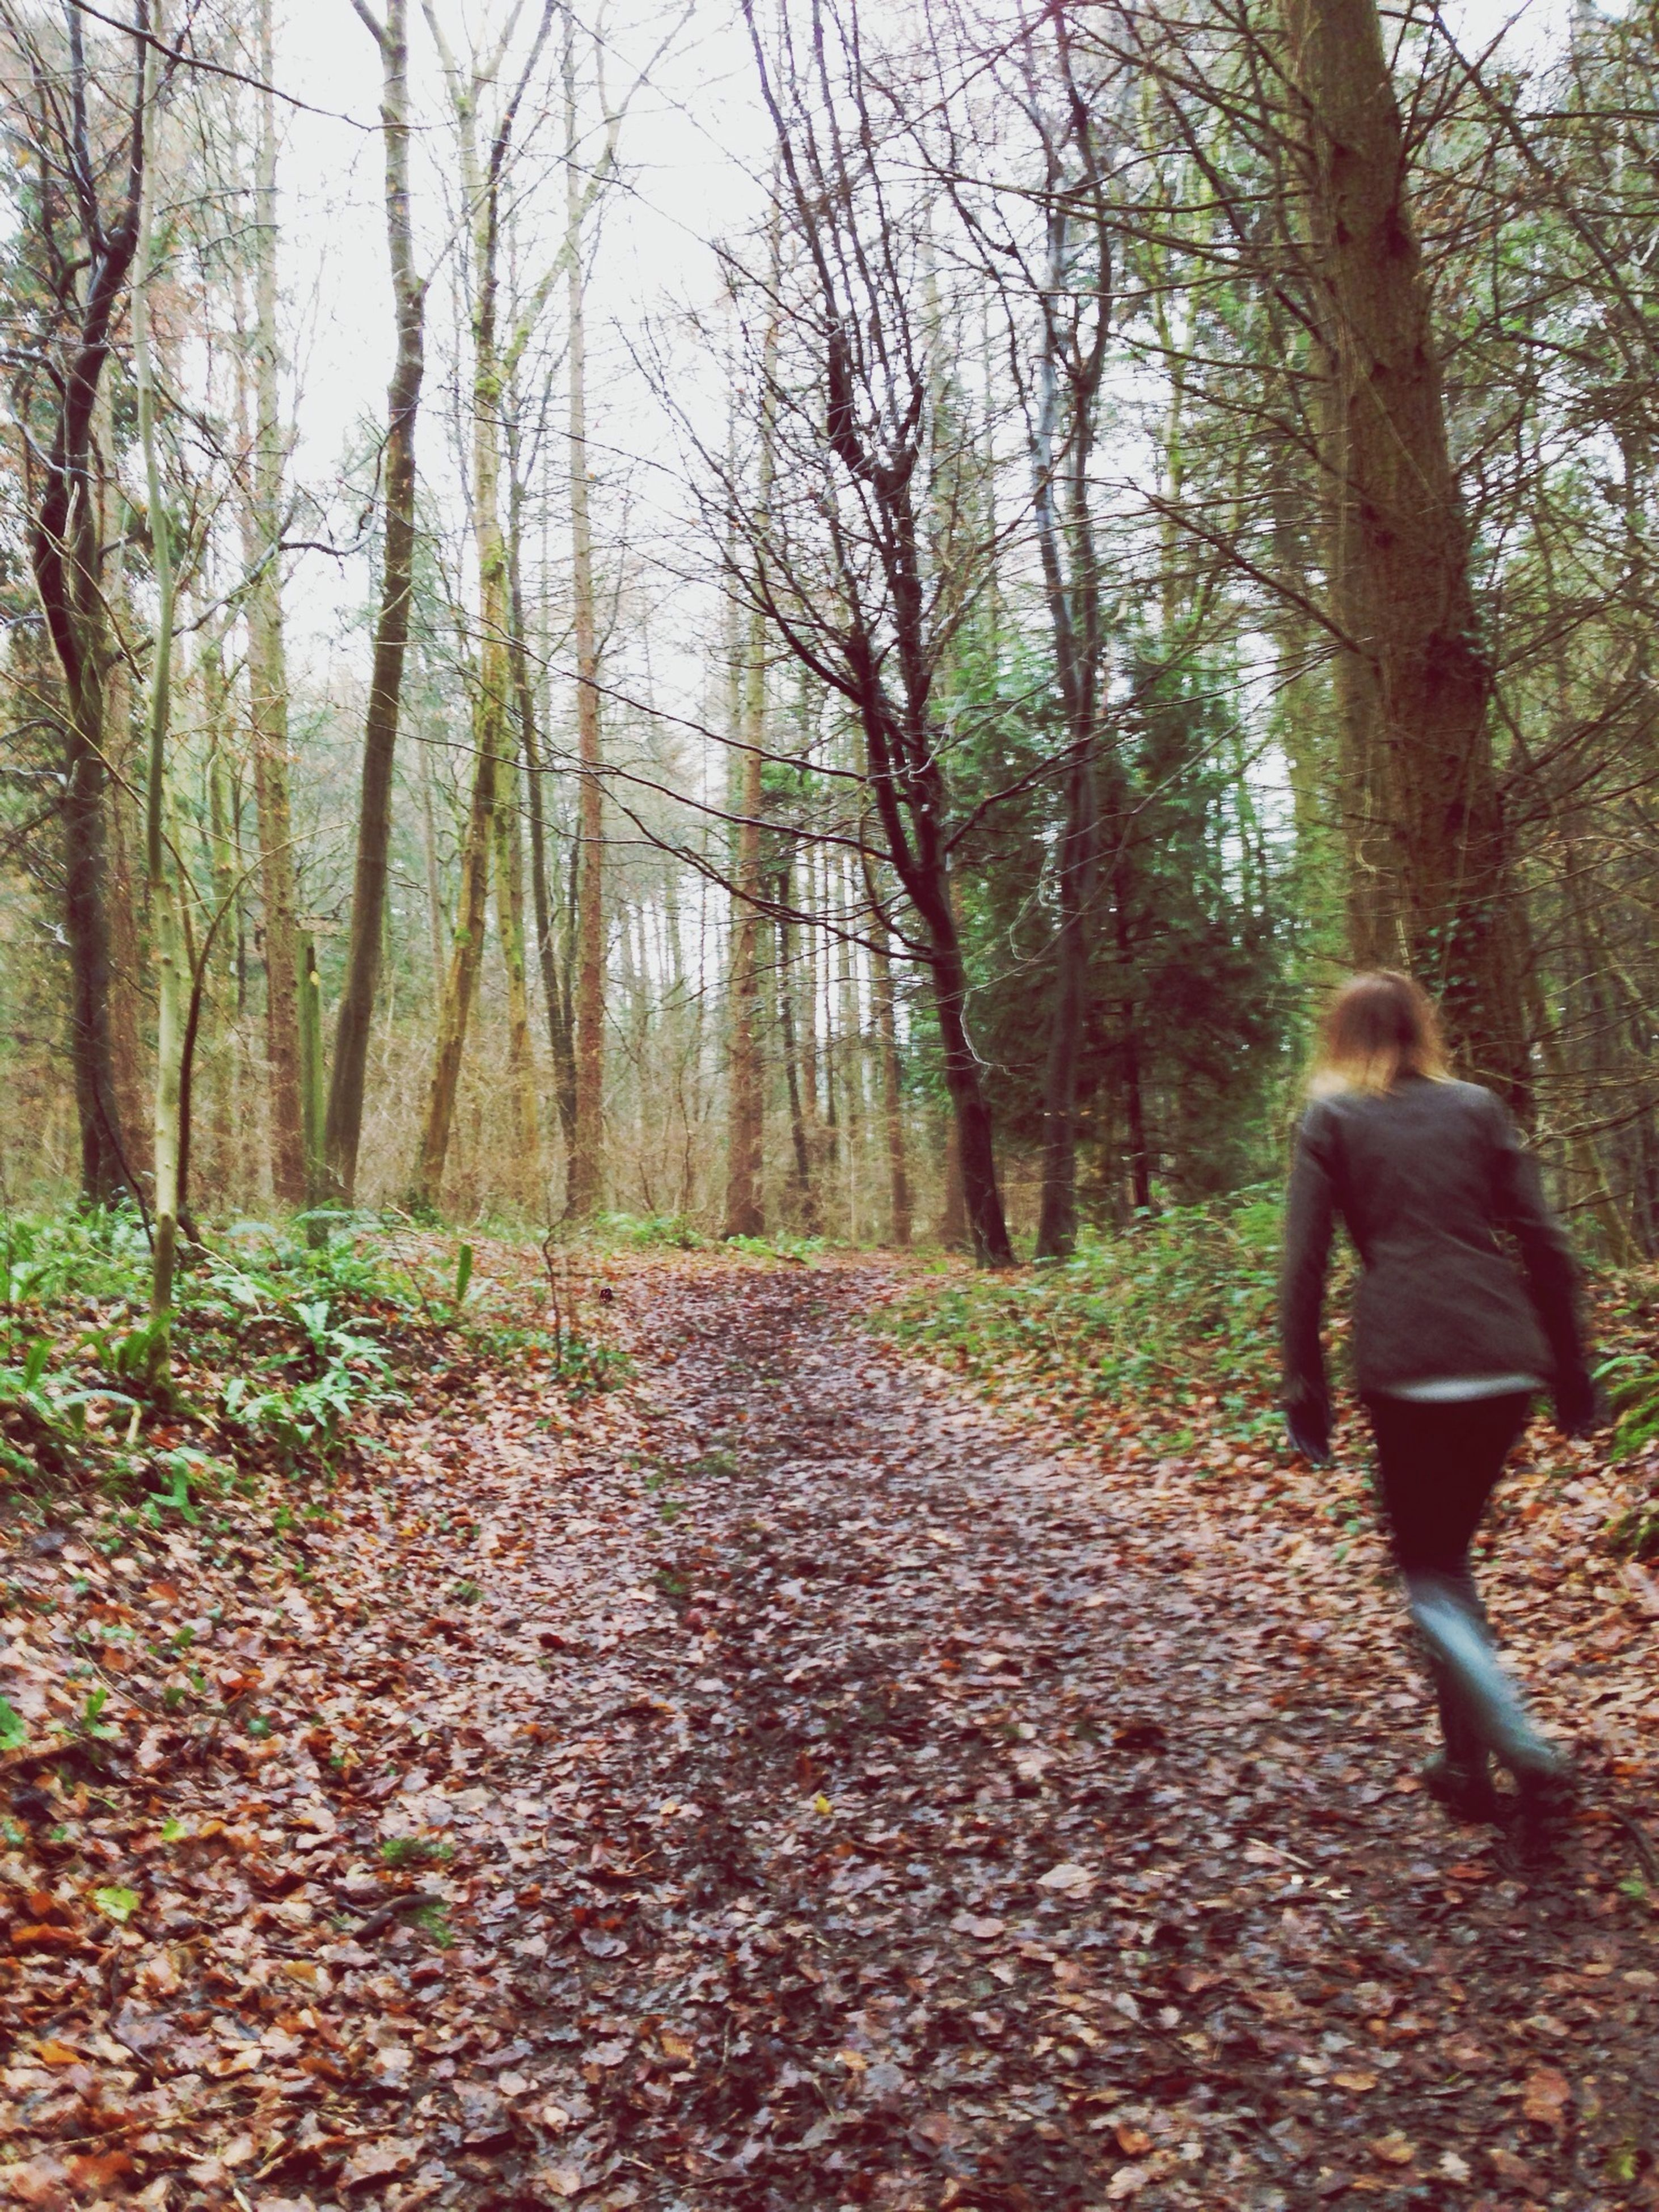 tree, lifestyles, forest, leisure activity, full length, rear view, casual clothing, standing, nature, tranquility, tree trunk, the way forward, walking, tranquil scene, woodland, growth, autumn, men